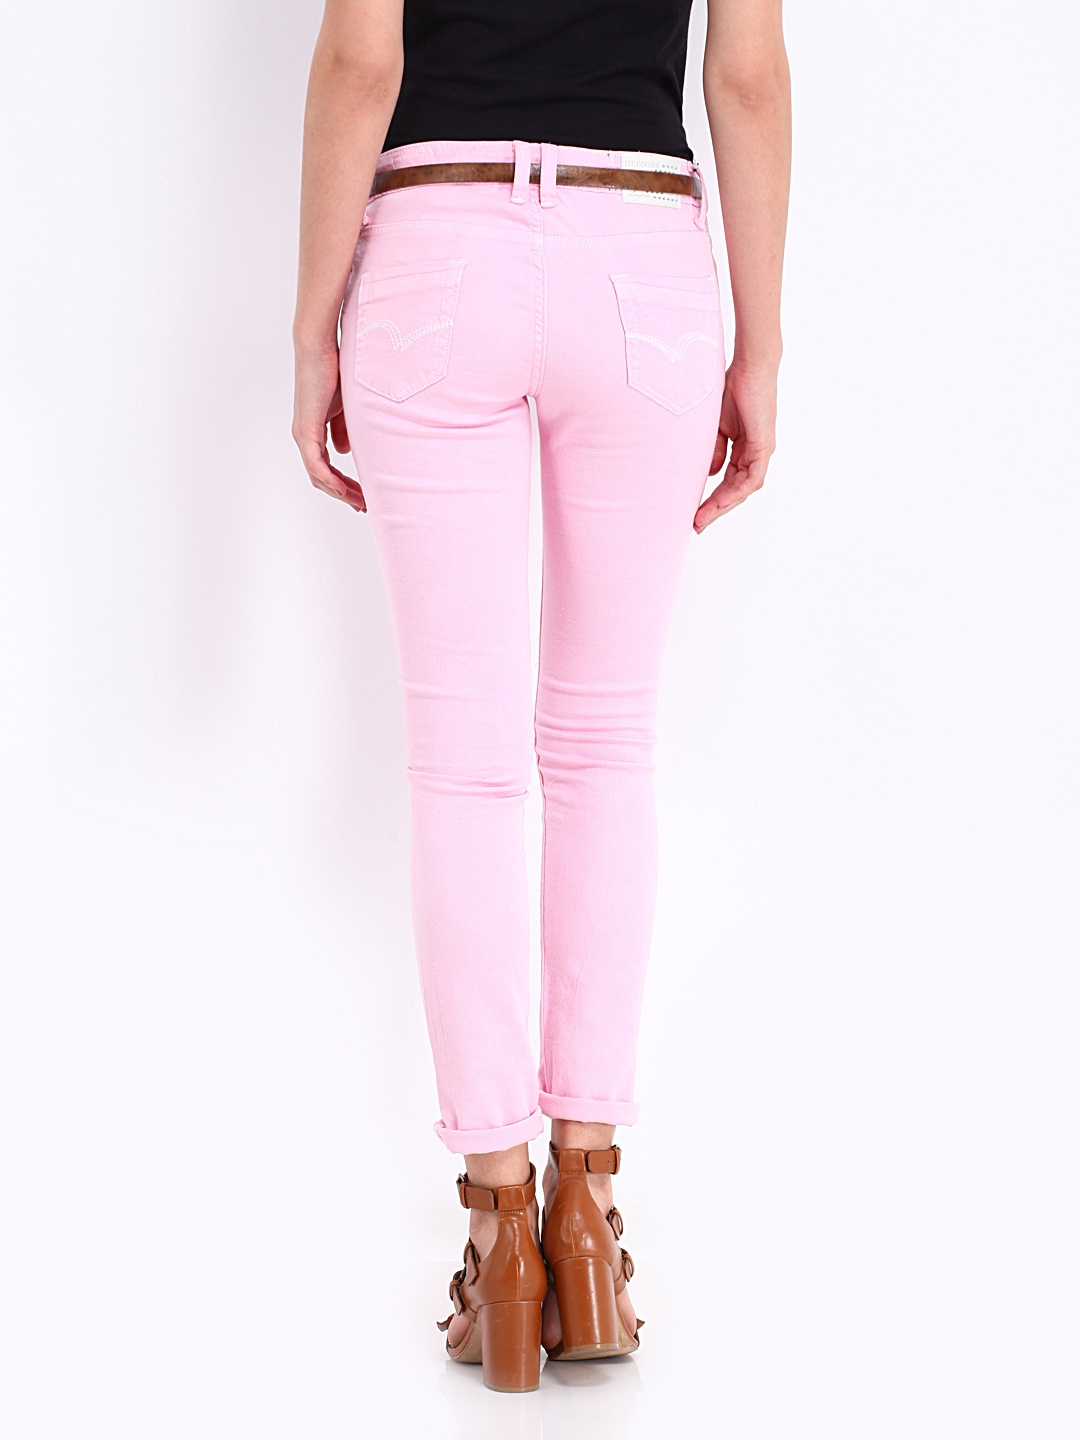 lee cooper jeans for women - photo #35